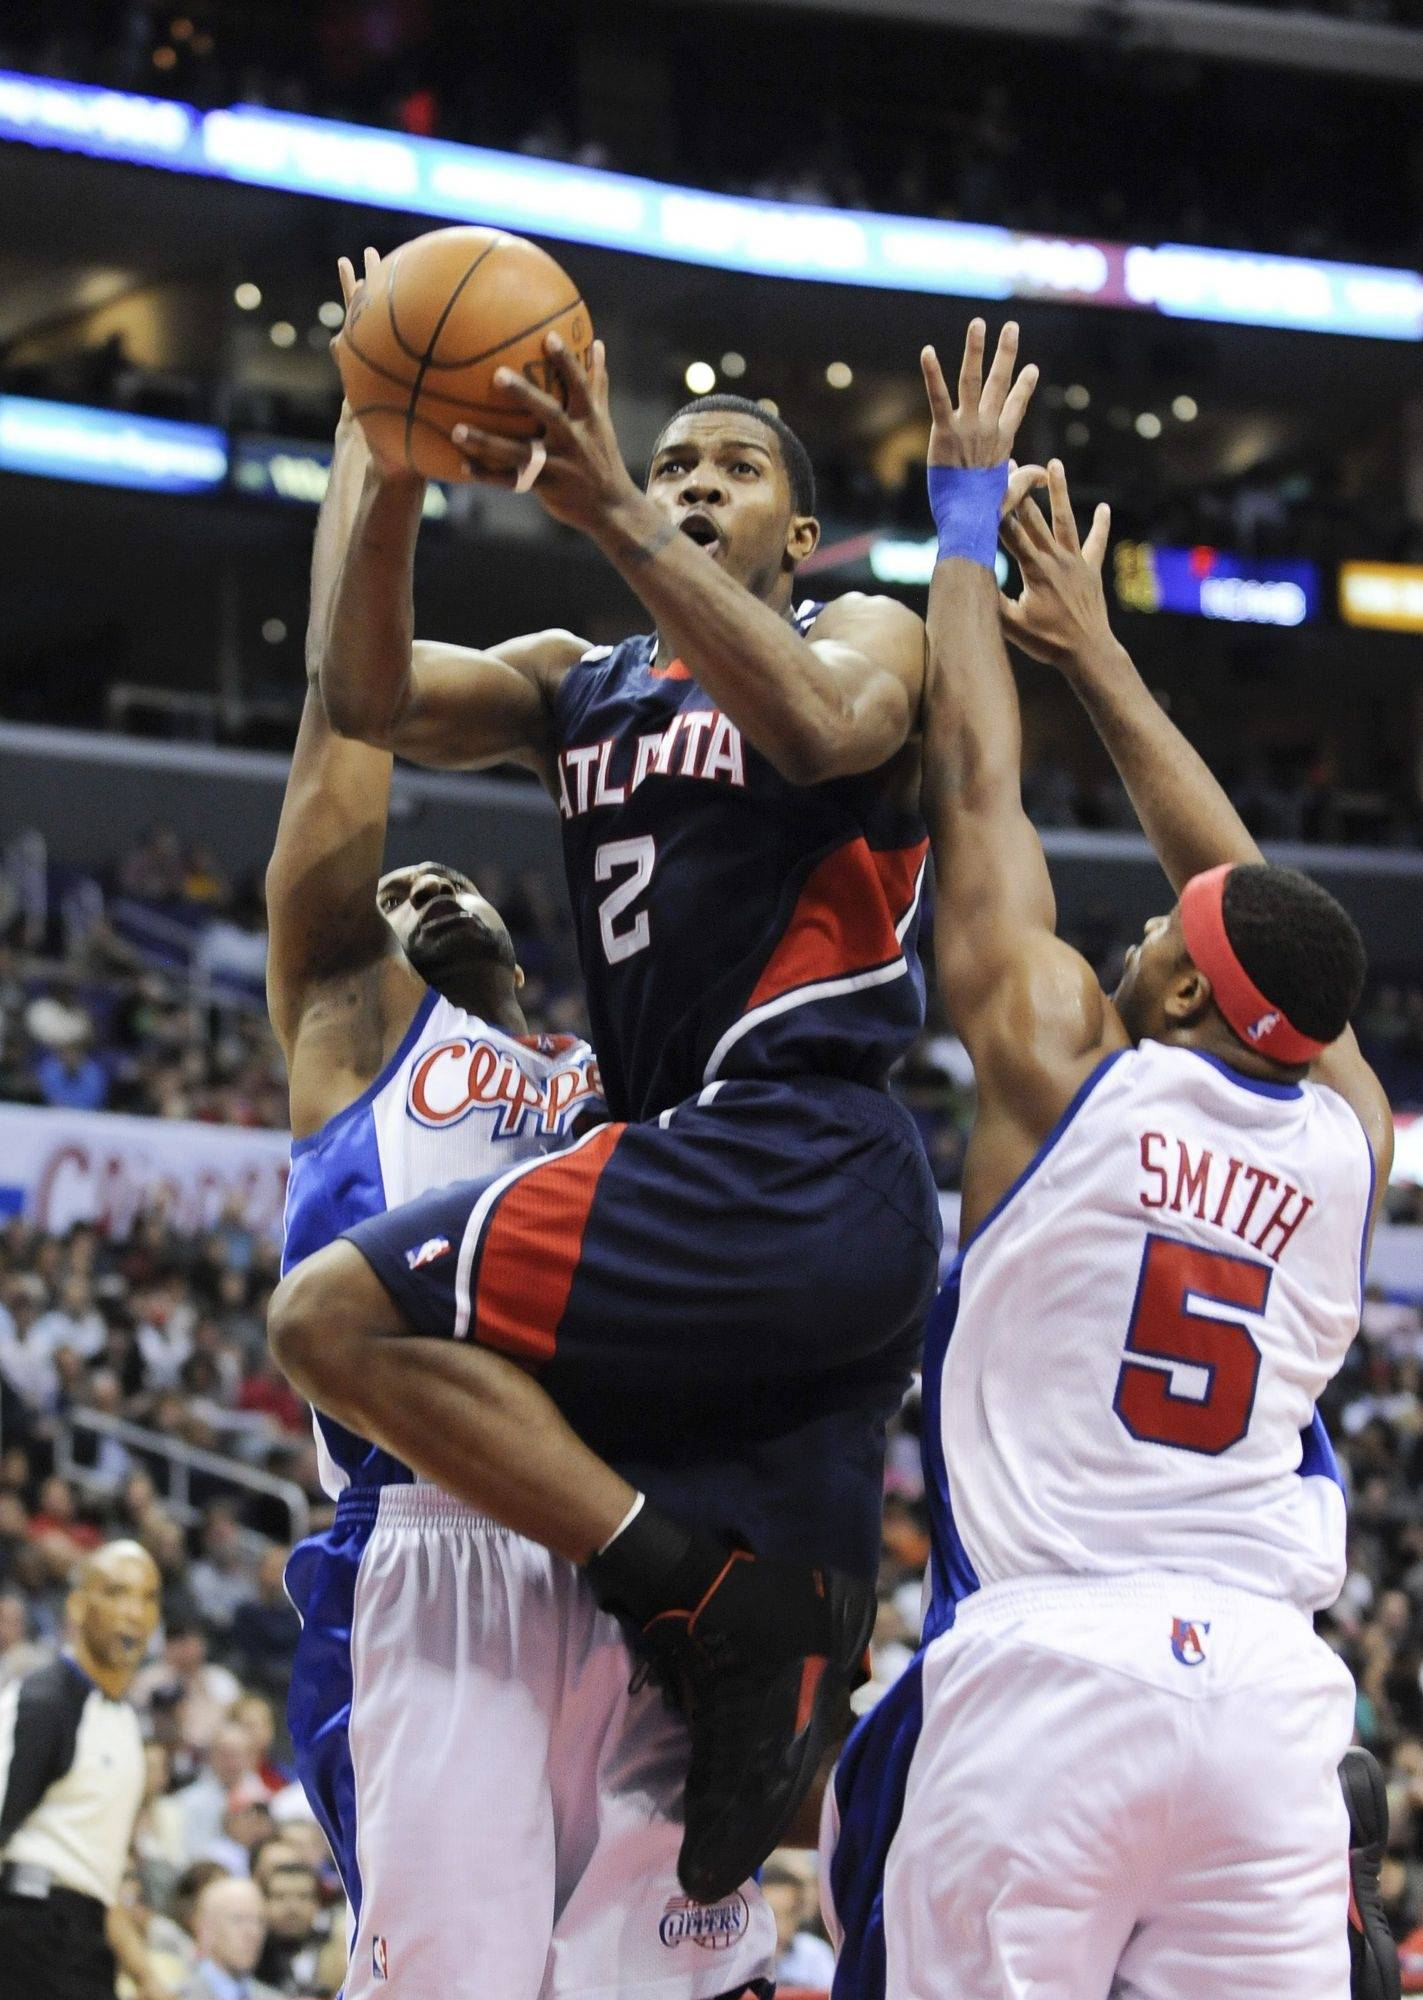 Atlanta Hawks guard Joe Johnson (2) drives through the double coverage of Los Angeles Clippers guard Mardy Collins, left and forward Craig Smith (5).